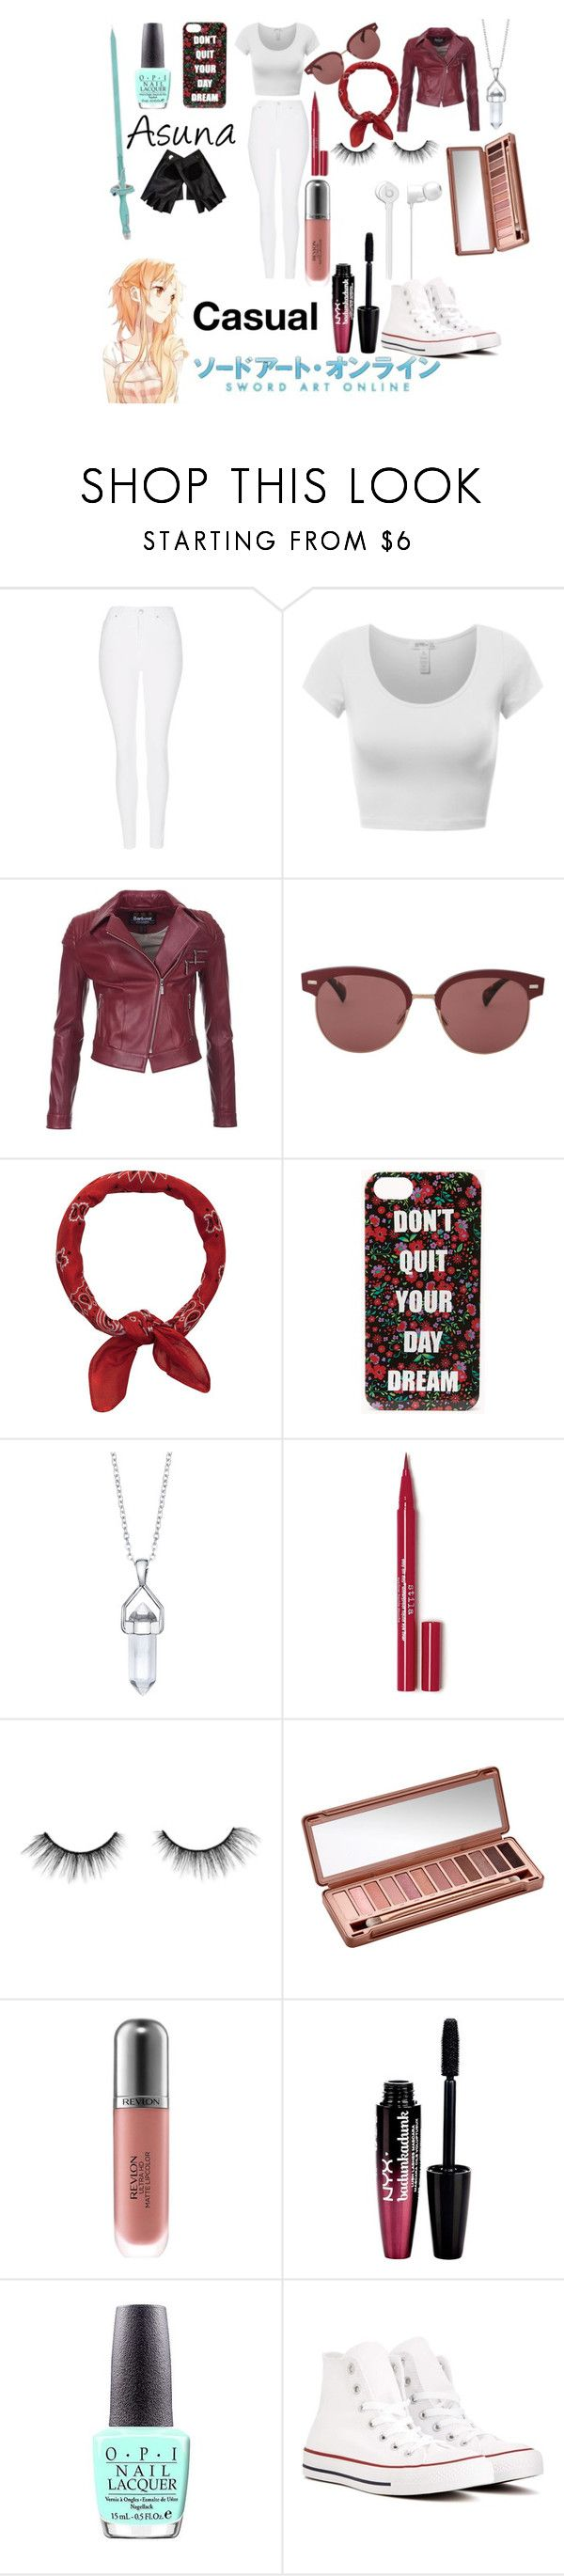 """""""Sword Art Online"""" by nerdyform on Polyvore featuring Topshop, Barbour International, Oliver Peoples, Accessorize, Forever 21, Bridge Jewelry, tarte, Urban Decay, Revlon and Charlotte Russe"""